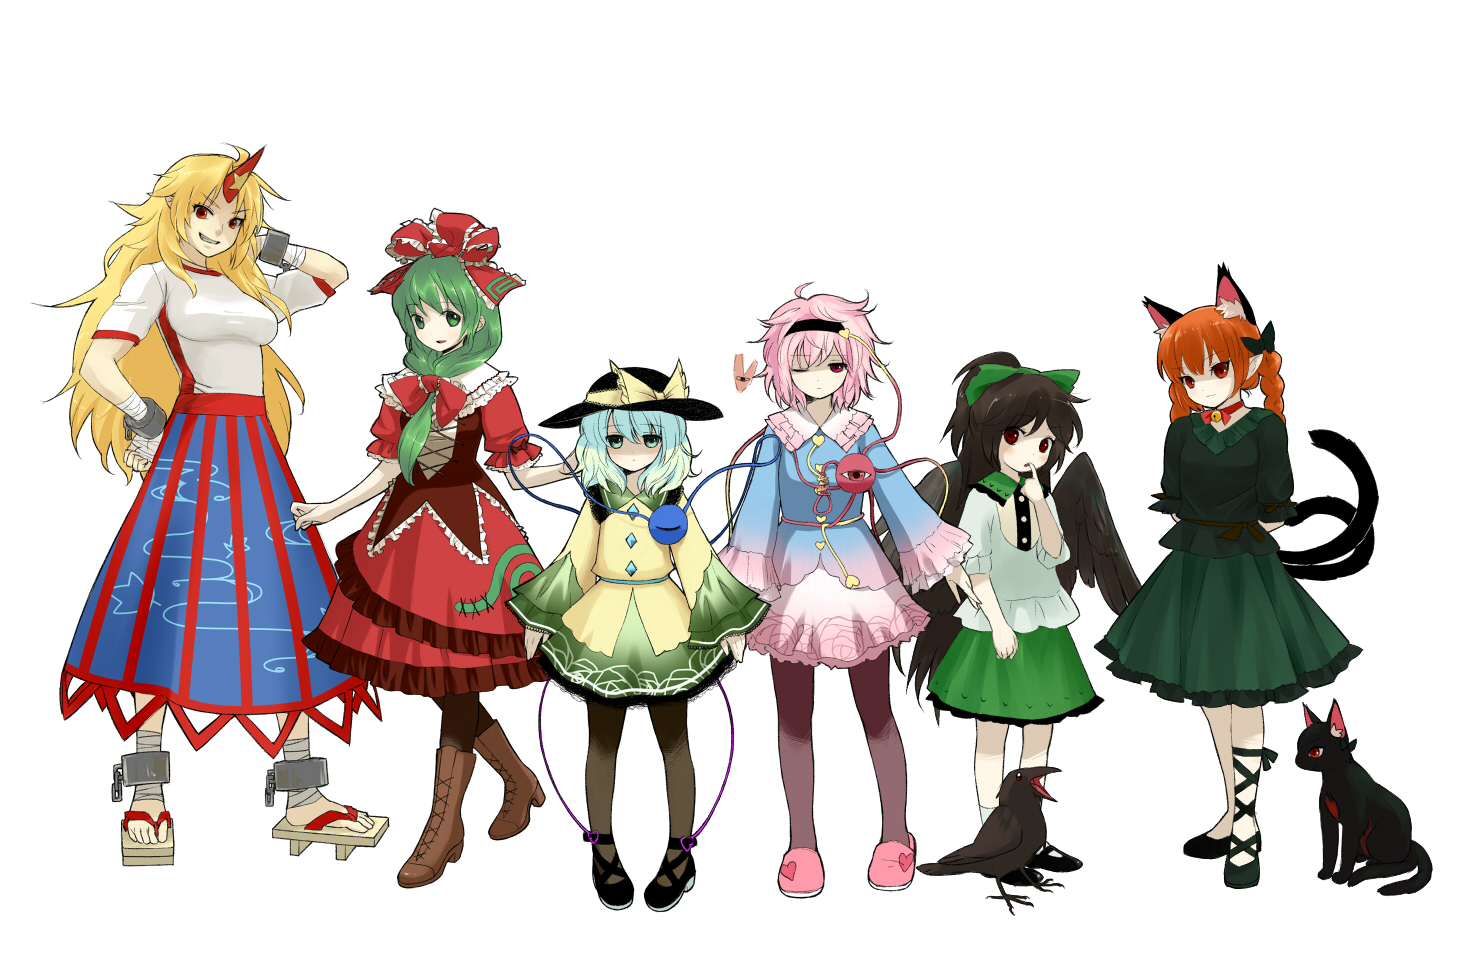 animal_ears blonde_hair bow braids catgirl dress green_eyes green_hair group hat horns hoshiguma_yuugi kaenbyou_rin kagiyama_hina komeiji_koishi komeiji_satori long_hair pantyhose pink_eyes pink_hair ponytail red_eyes reiuji_utsuho sdmaiden short_hair skirt tail touhou wings